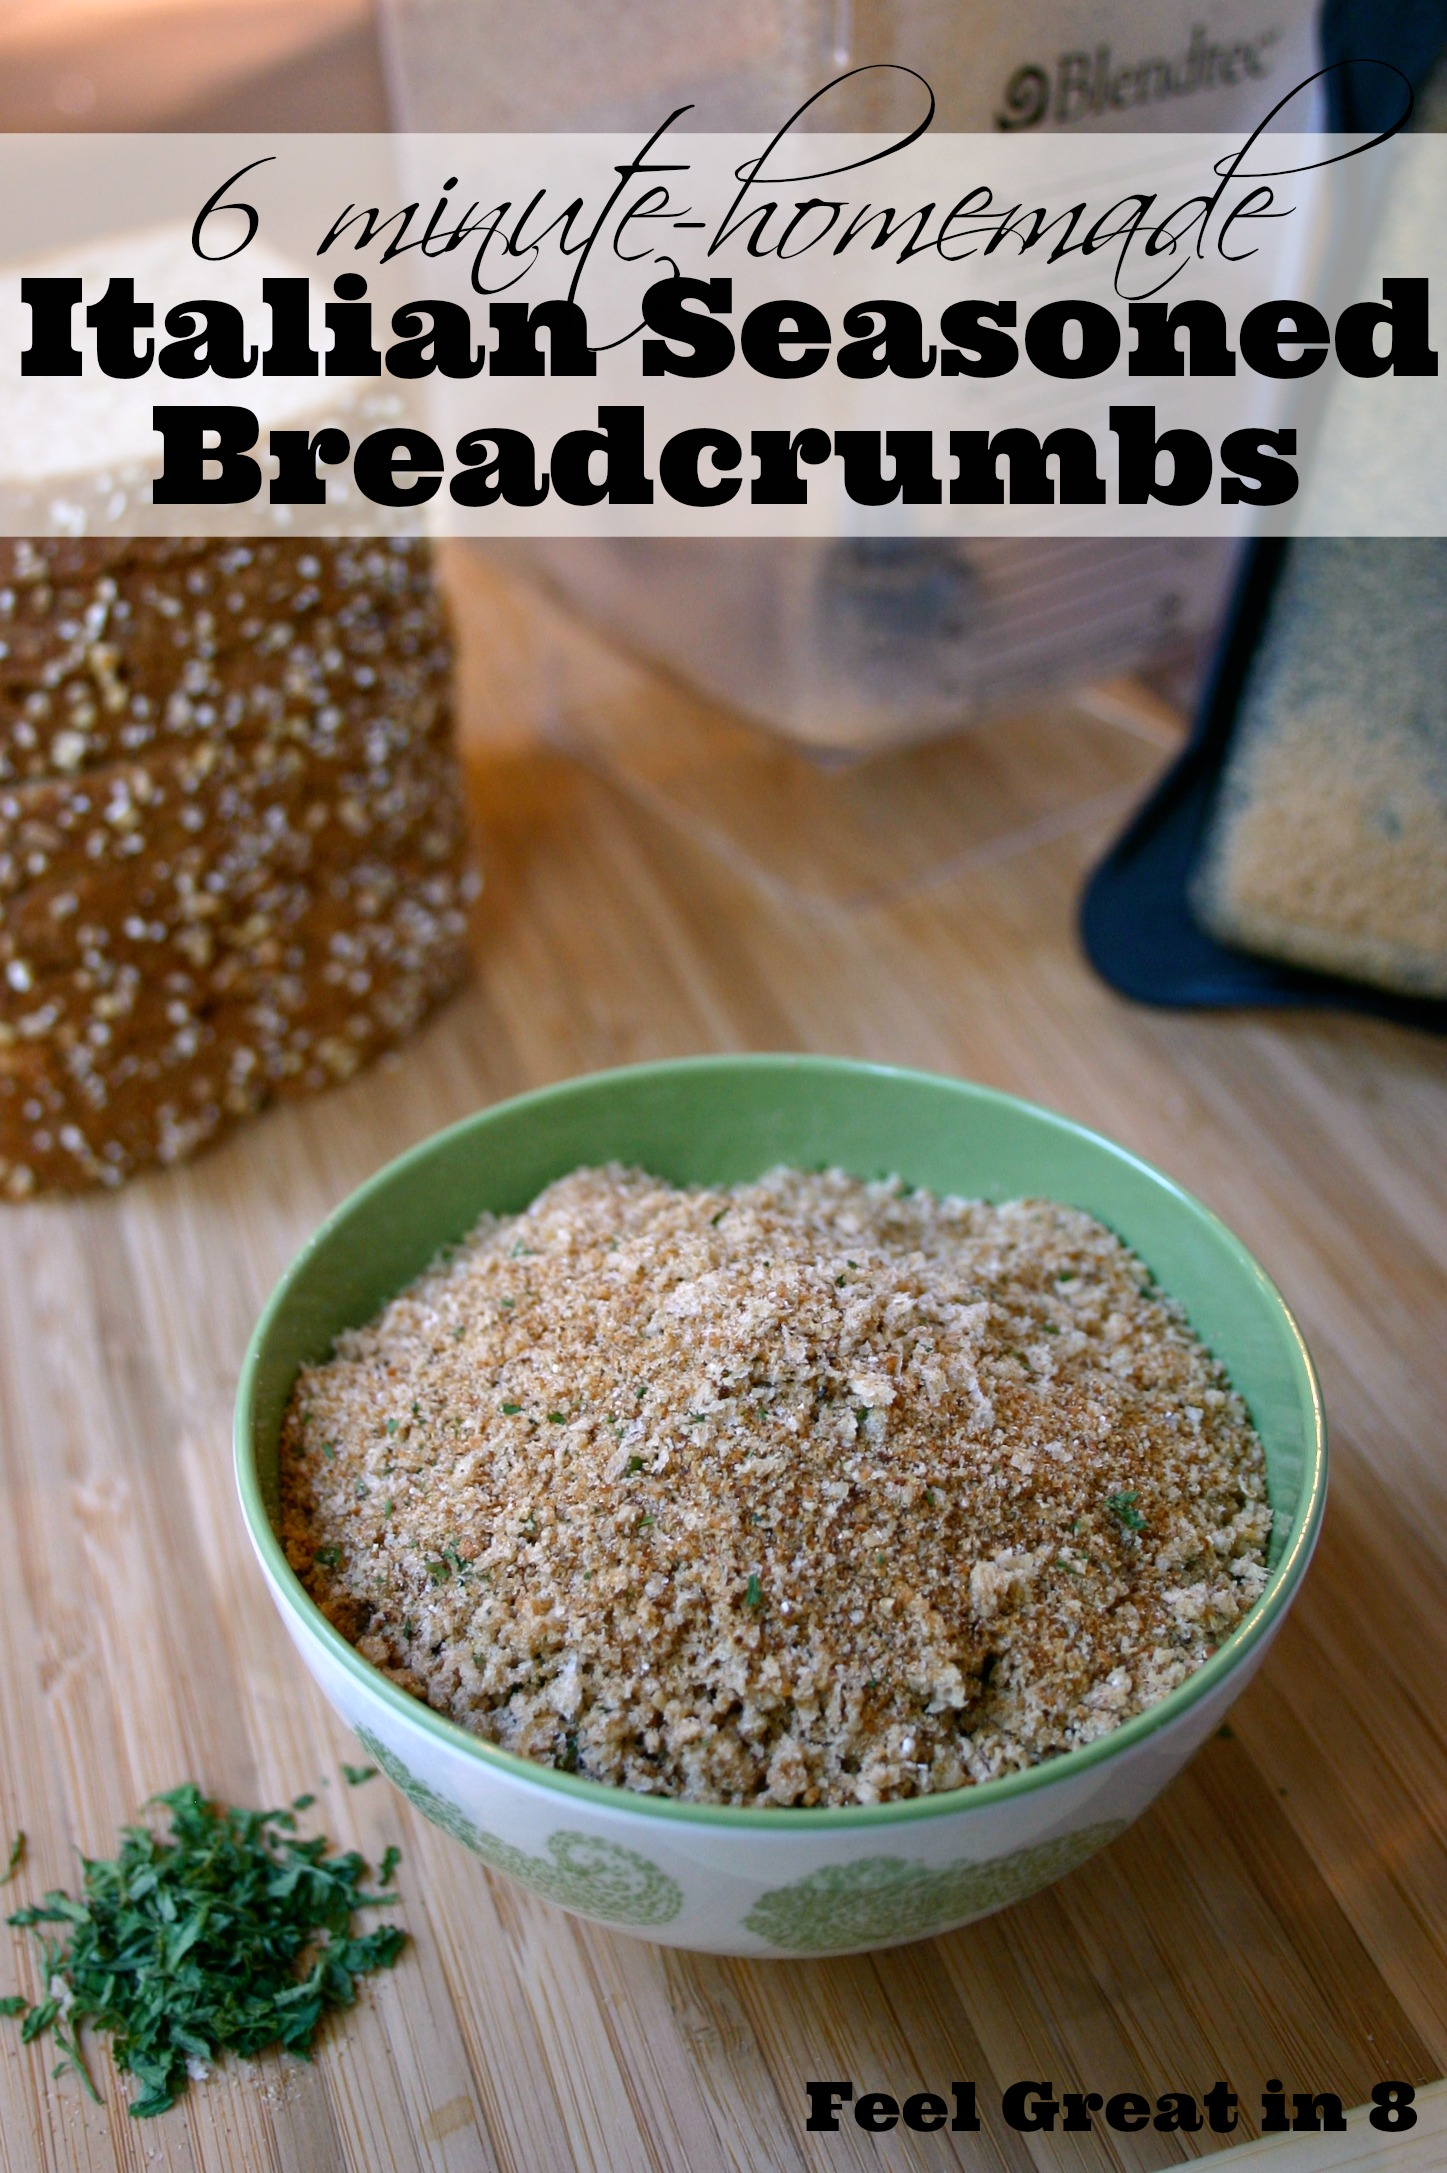 You won't believe how simple it is to make homemade italian seasoned breadcrumbs! Quick, easy, and healthy! #healthy #easy #breadcrumbs